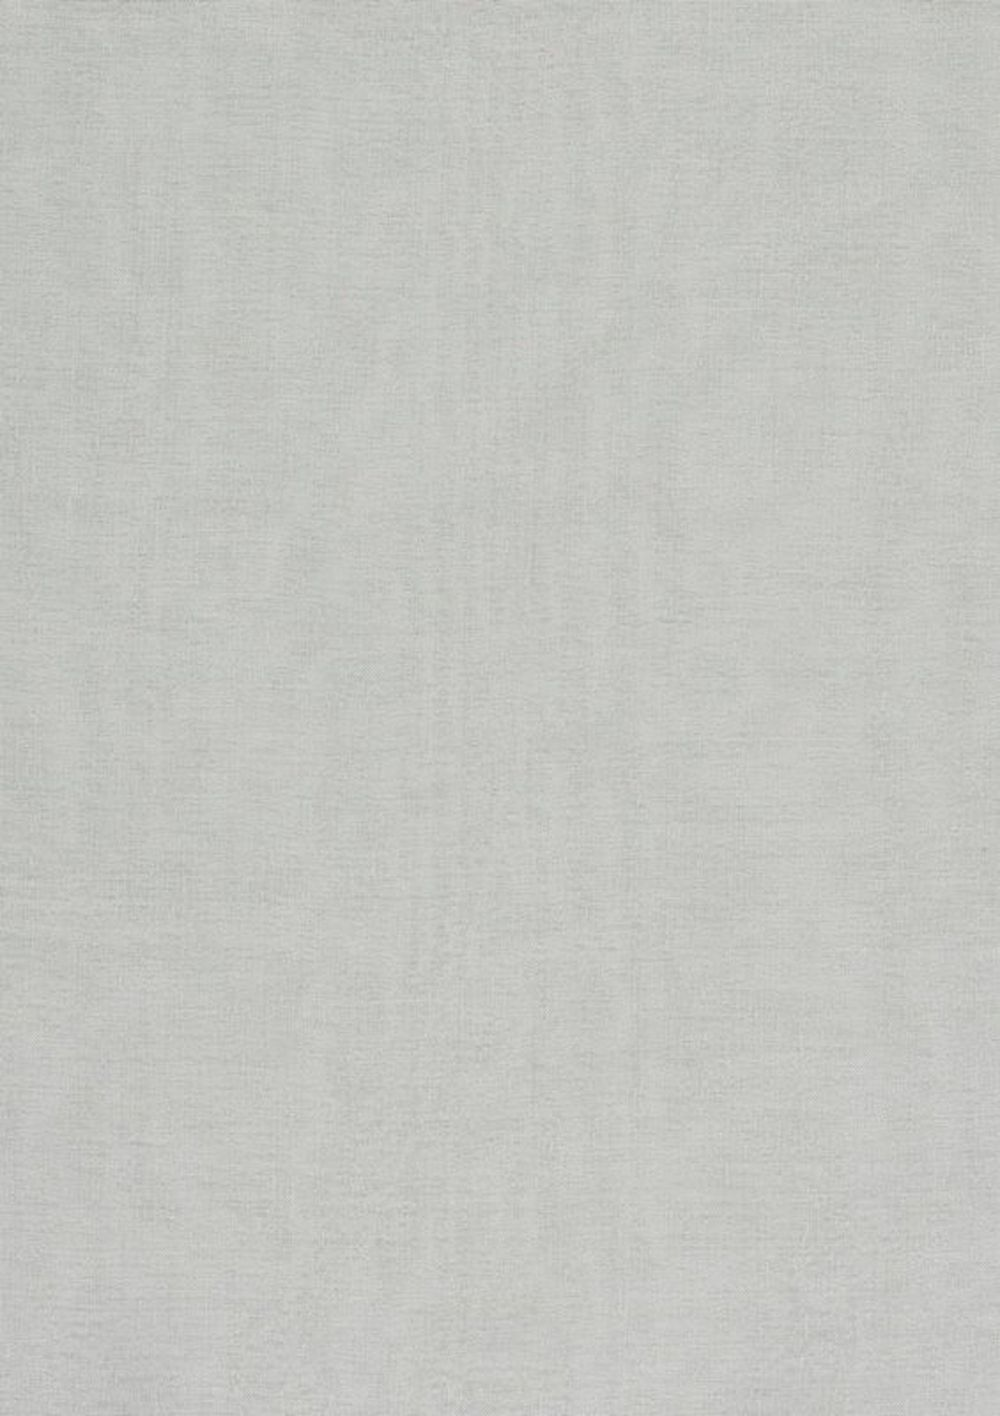 Photo of the fabric Calais FR-One Sterling swatch by FR-One. Use for Sheer Curtains. Style of Plain, Sheer